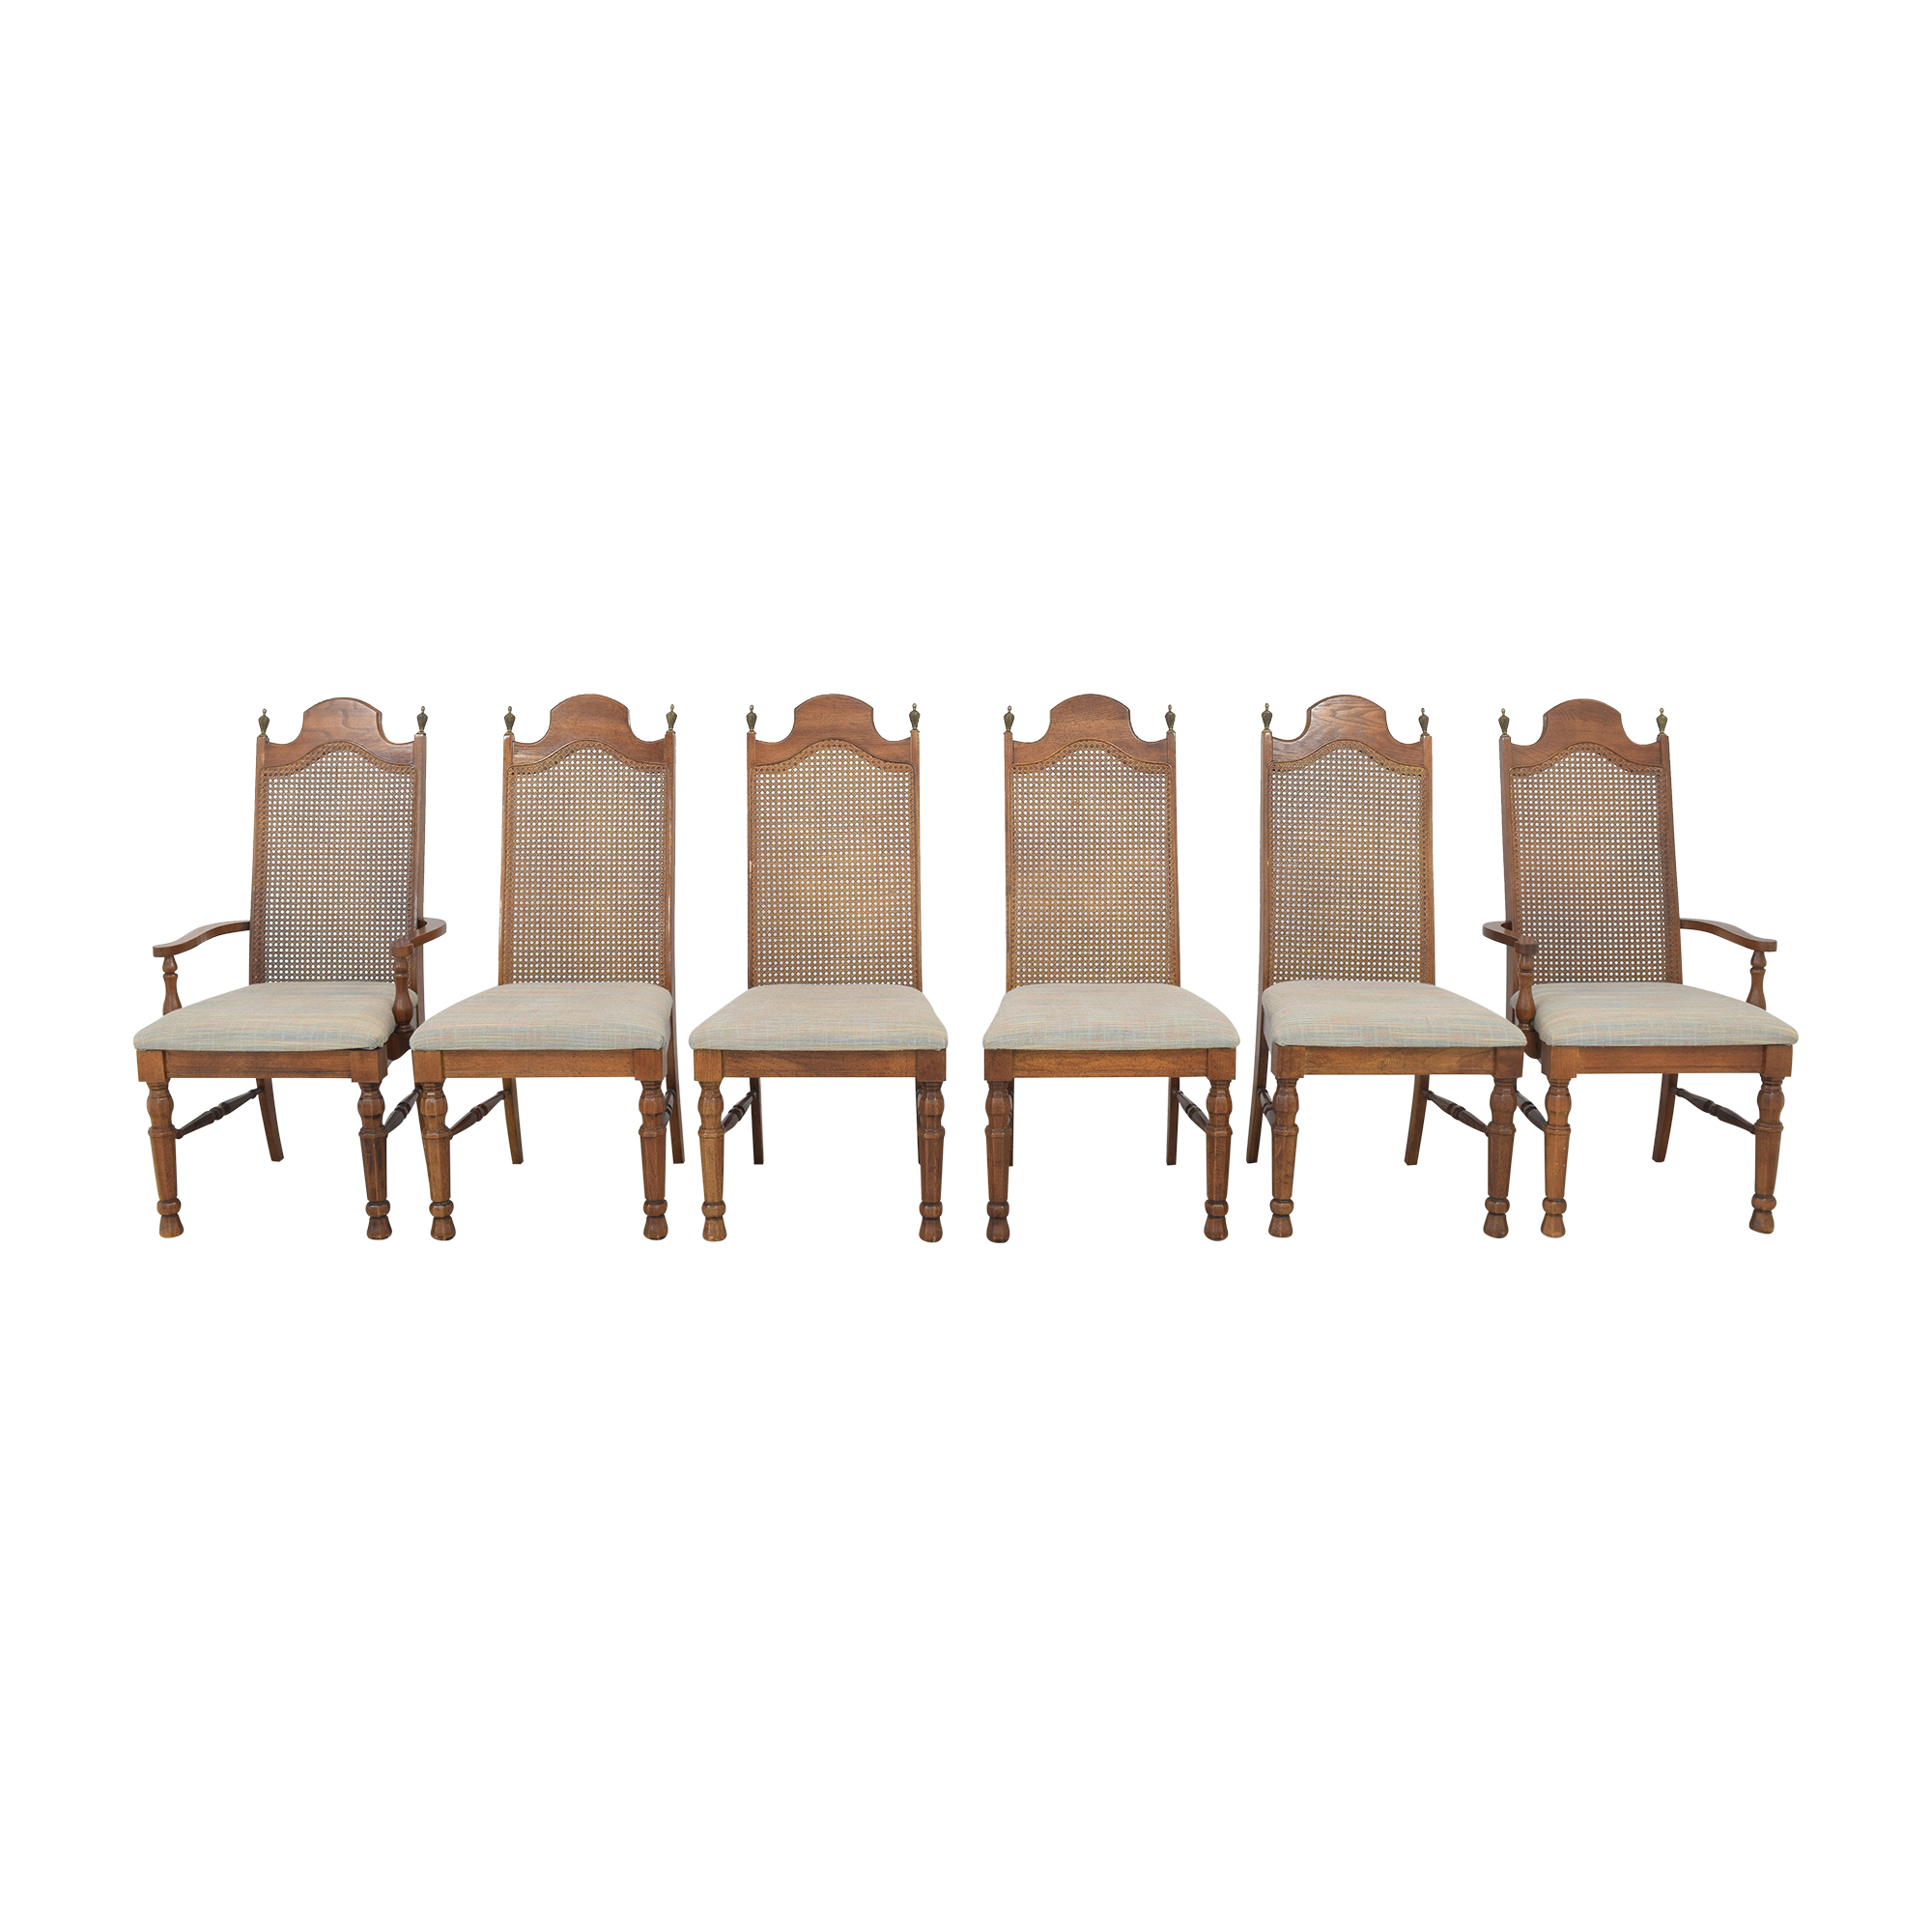 Lenoir Chair Company Lenoir Cane Back Dining Chairs ma